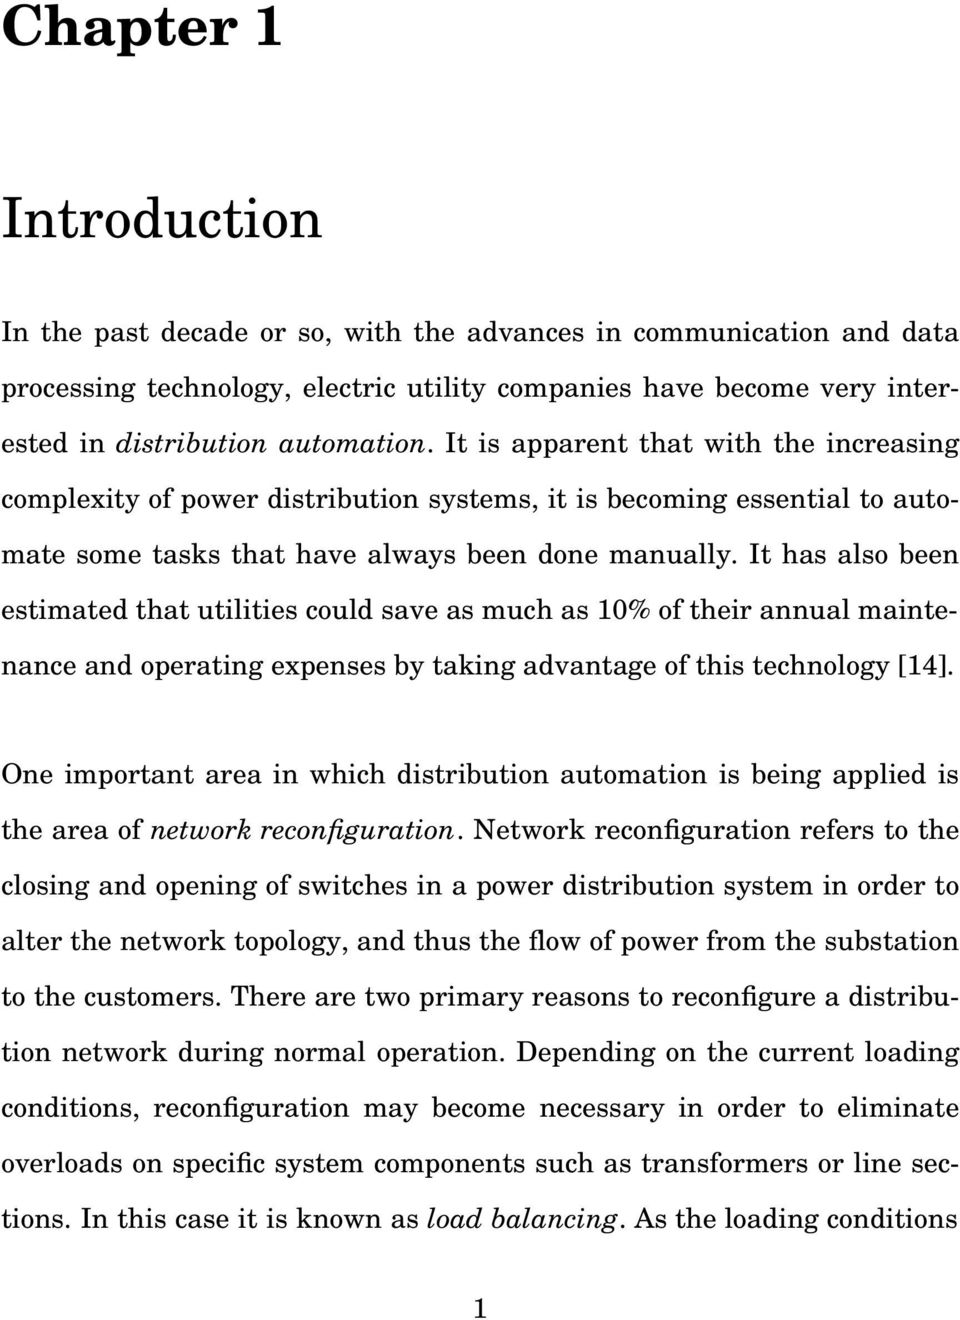 NETWORK RECONFIGURATION FOR LOSS REDUCTION IN THREE-PHASE POWER